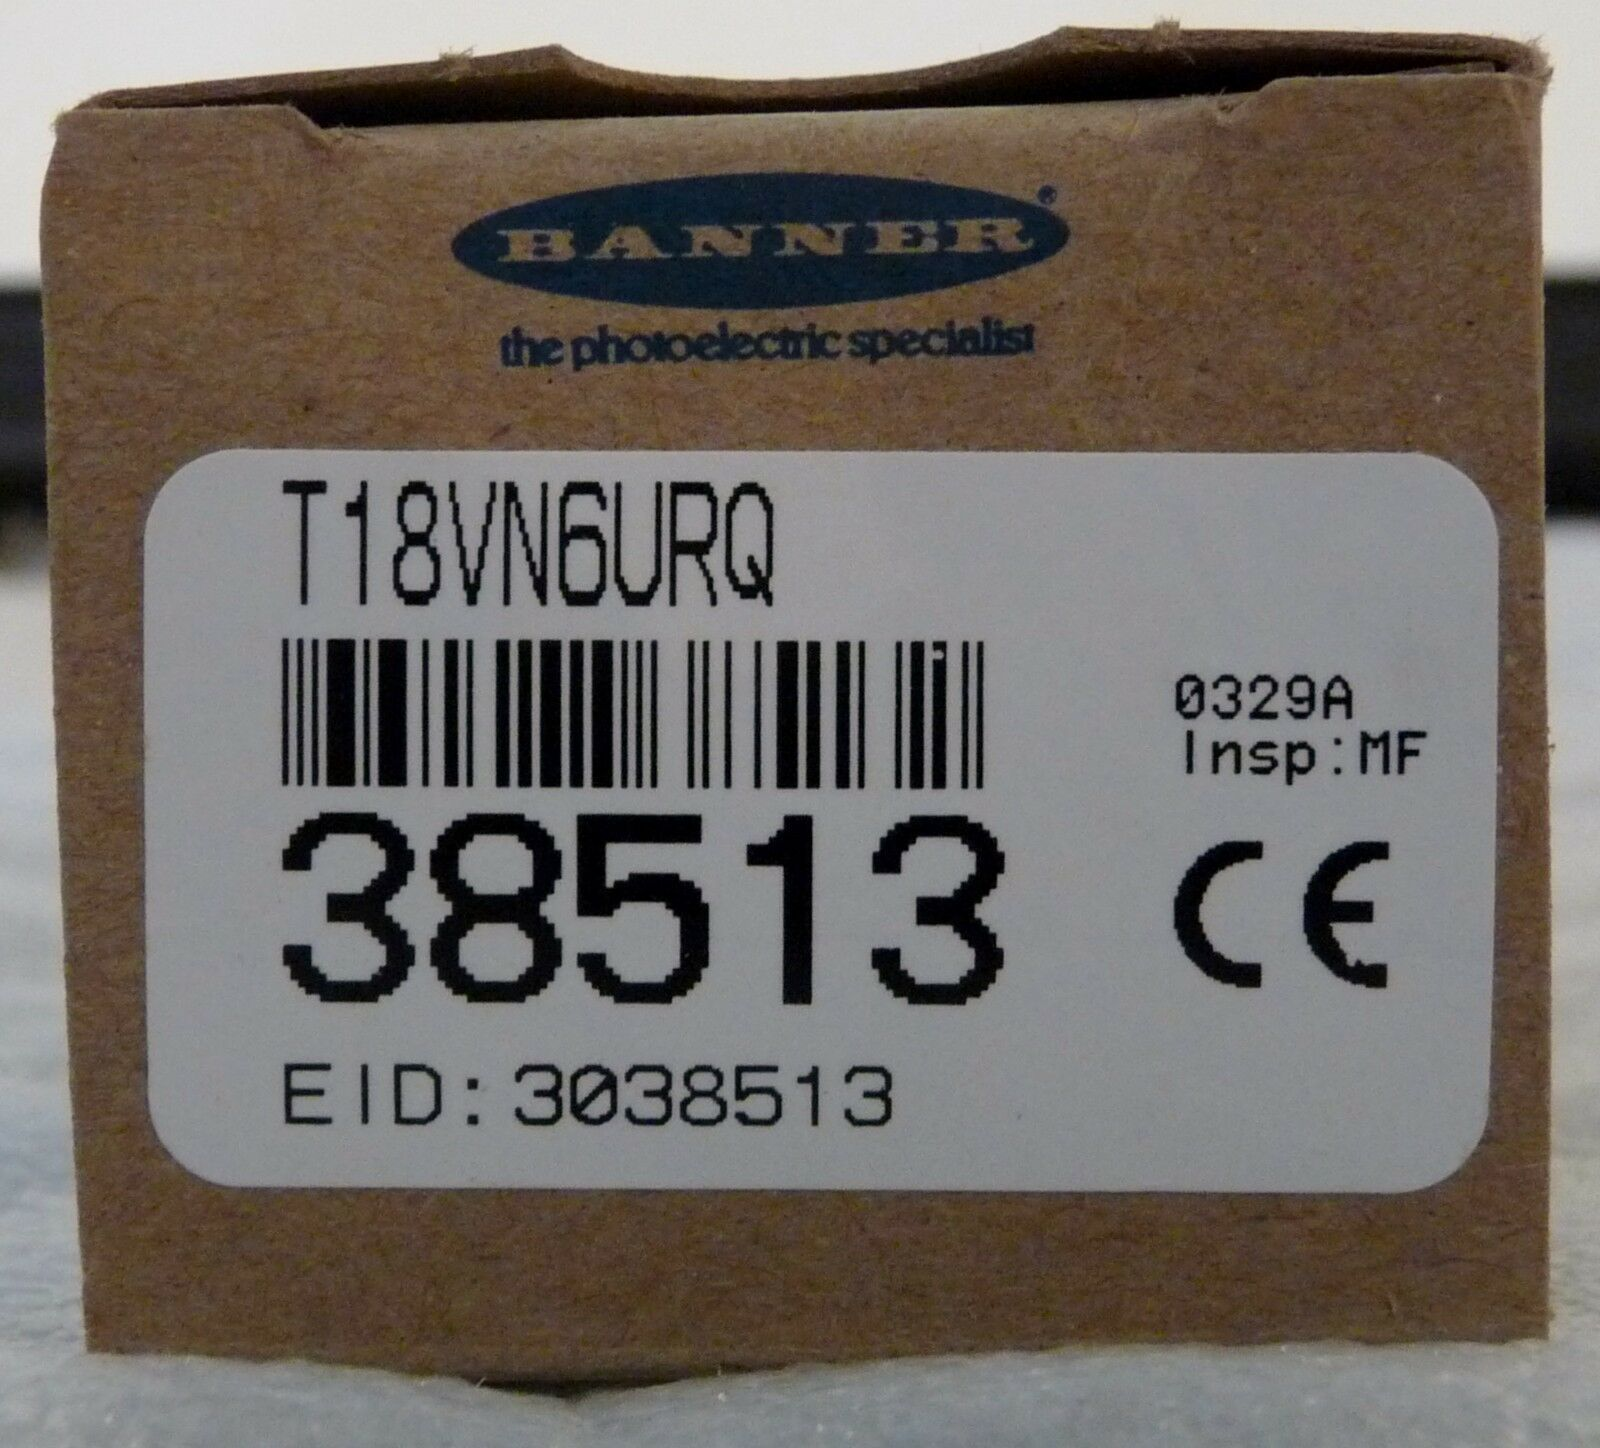 NEW IN BOX BANNER ENGINEERING 38513 T18VN6URQ T18U SERIES RECEIVER 300-600MM